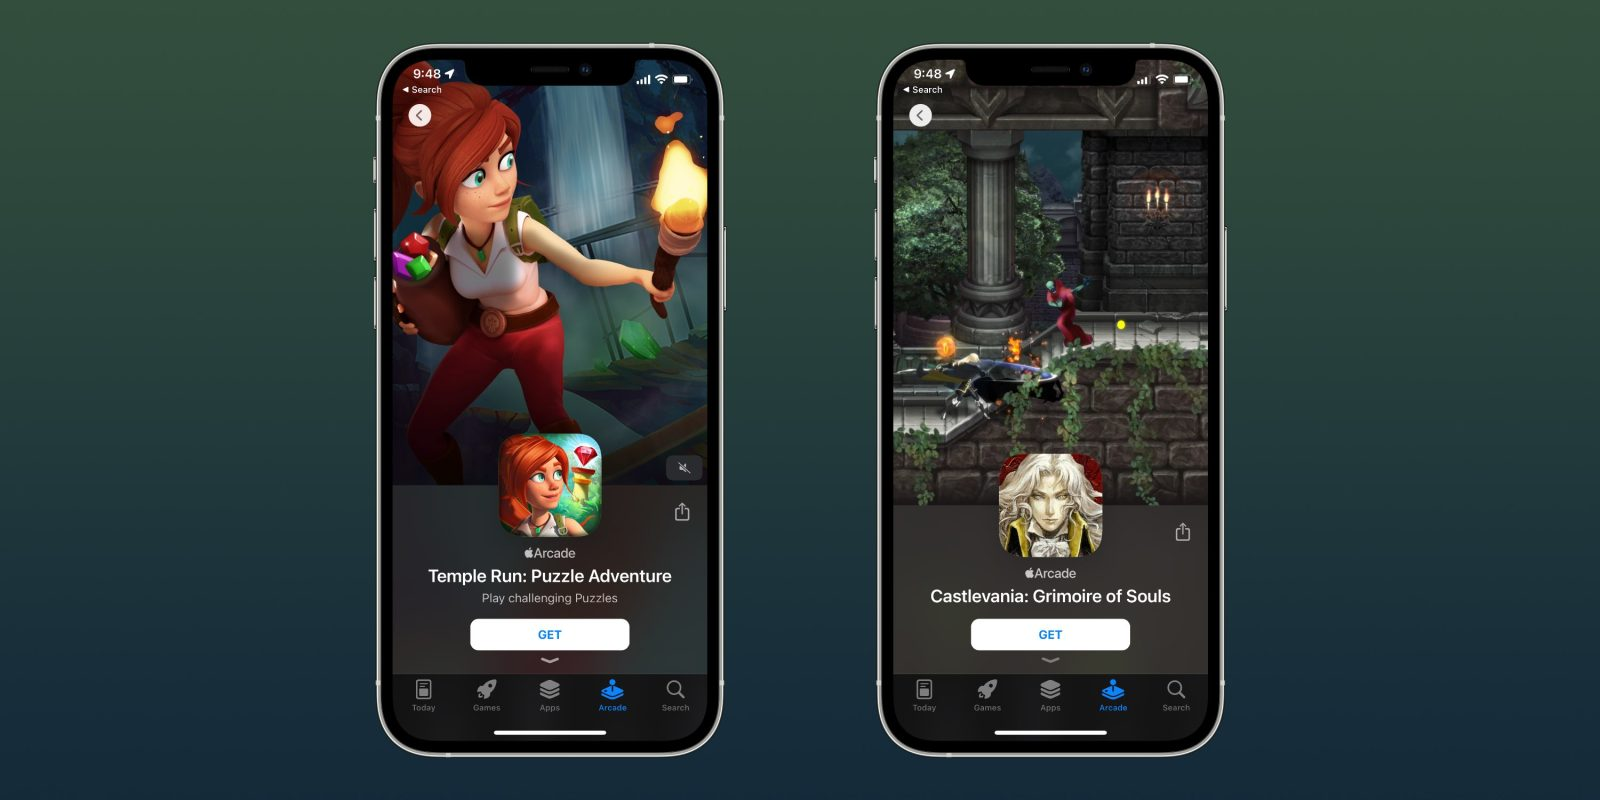 photo of Latest Apple Arcade games for iPhone, Mac, Apple TV [Castlevania and Temple Run Puzzle Adventure] image